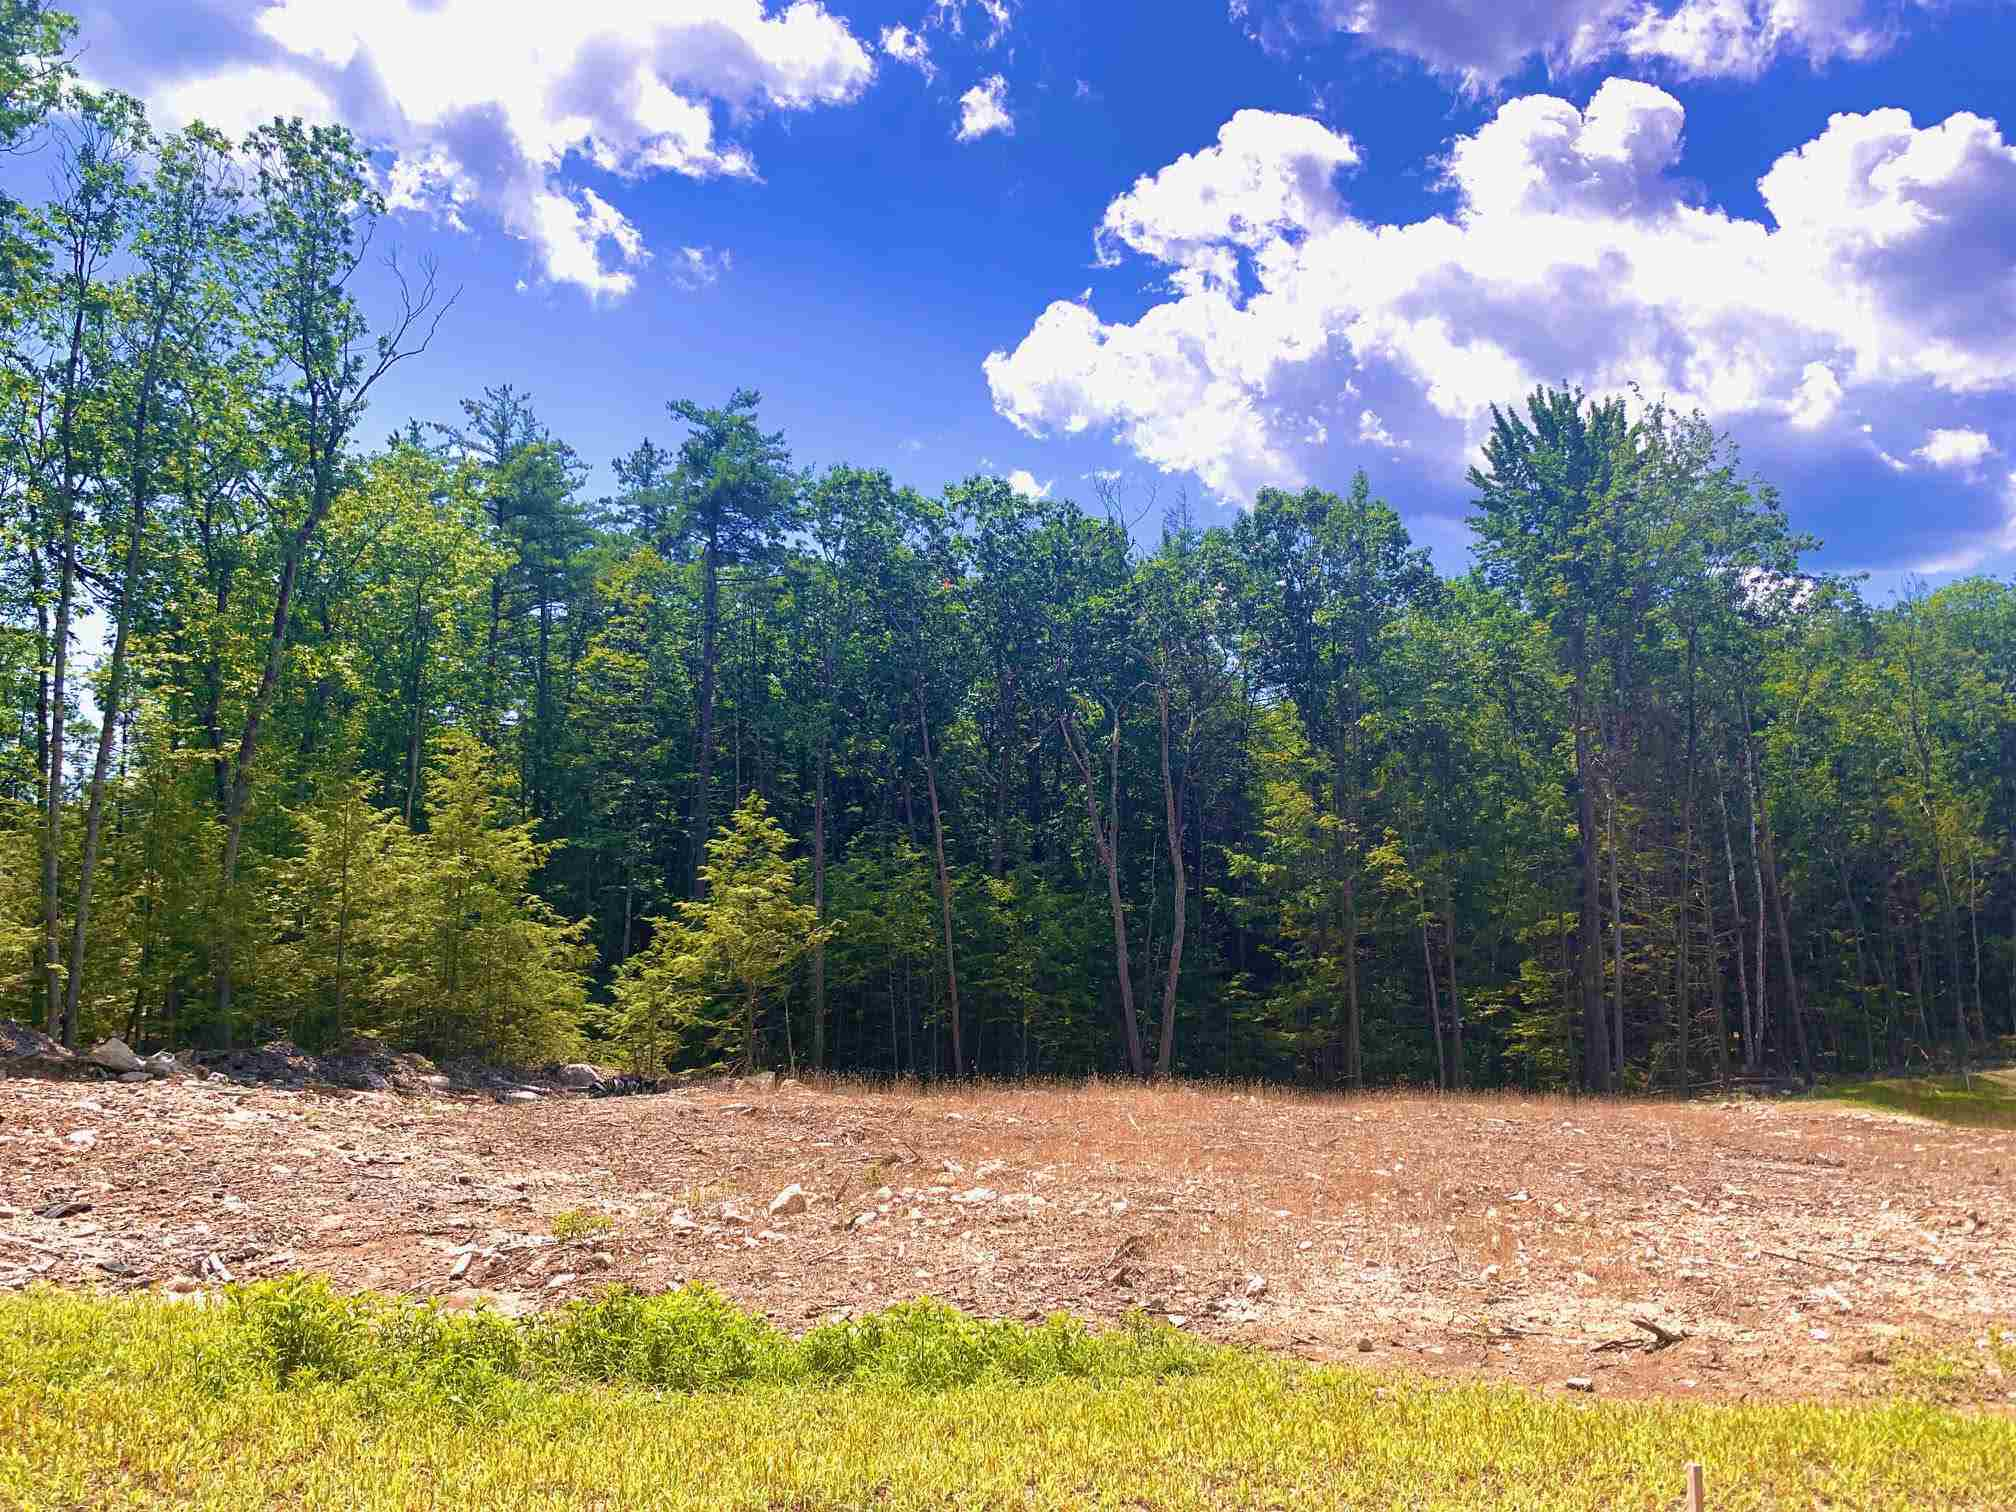 MLS 4818477: Lot 37 Founders Way, Amherst NH